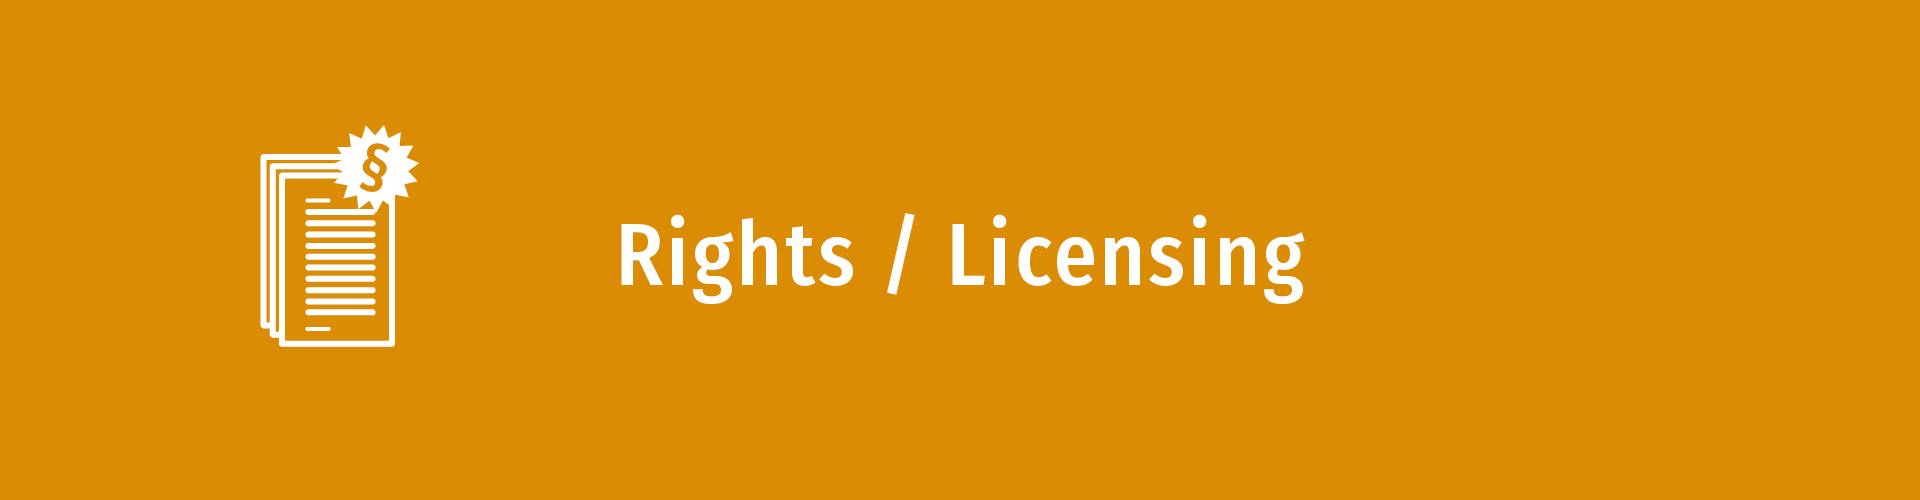 Rights / Licensing